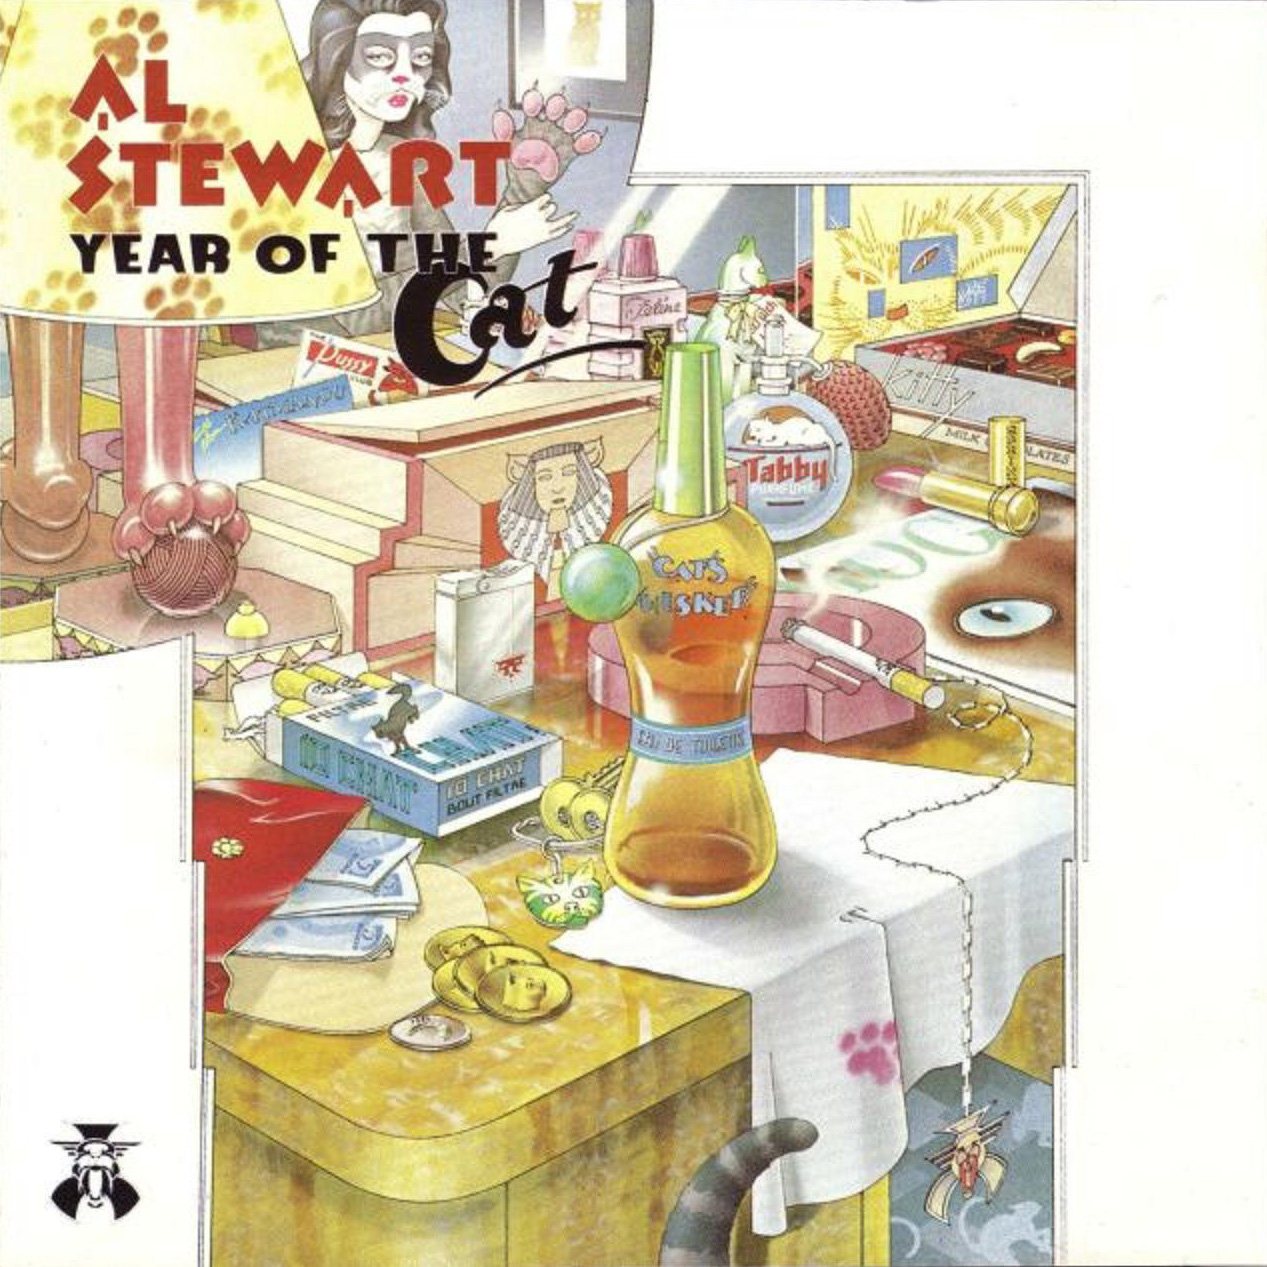 bucolicdesign_song_al_stewart_year_of_the_cat